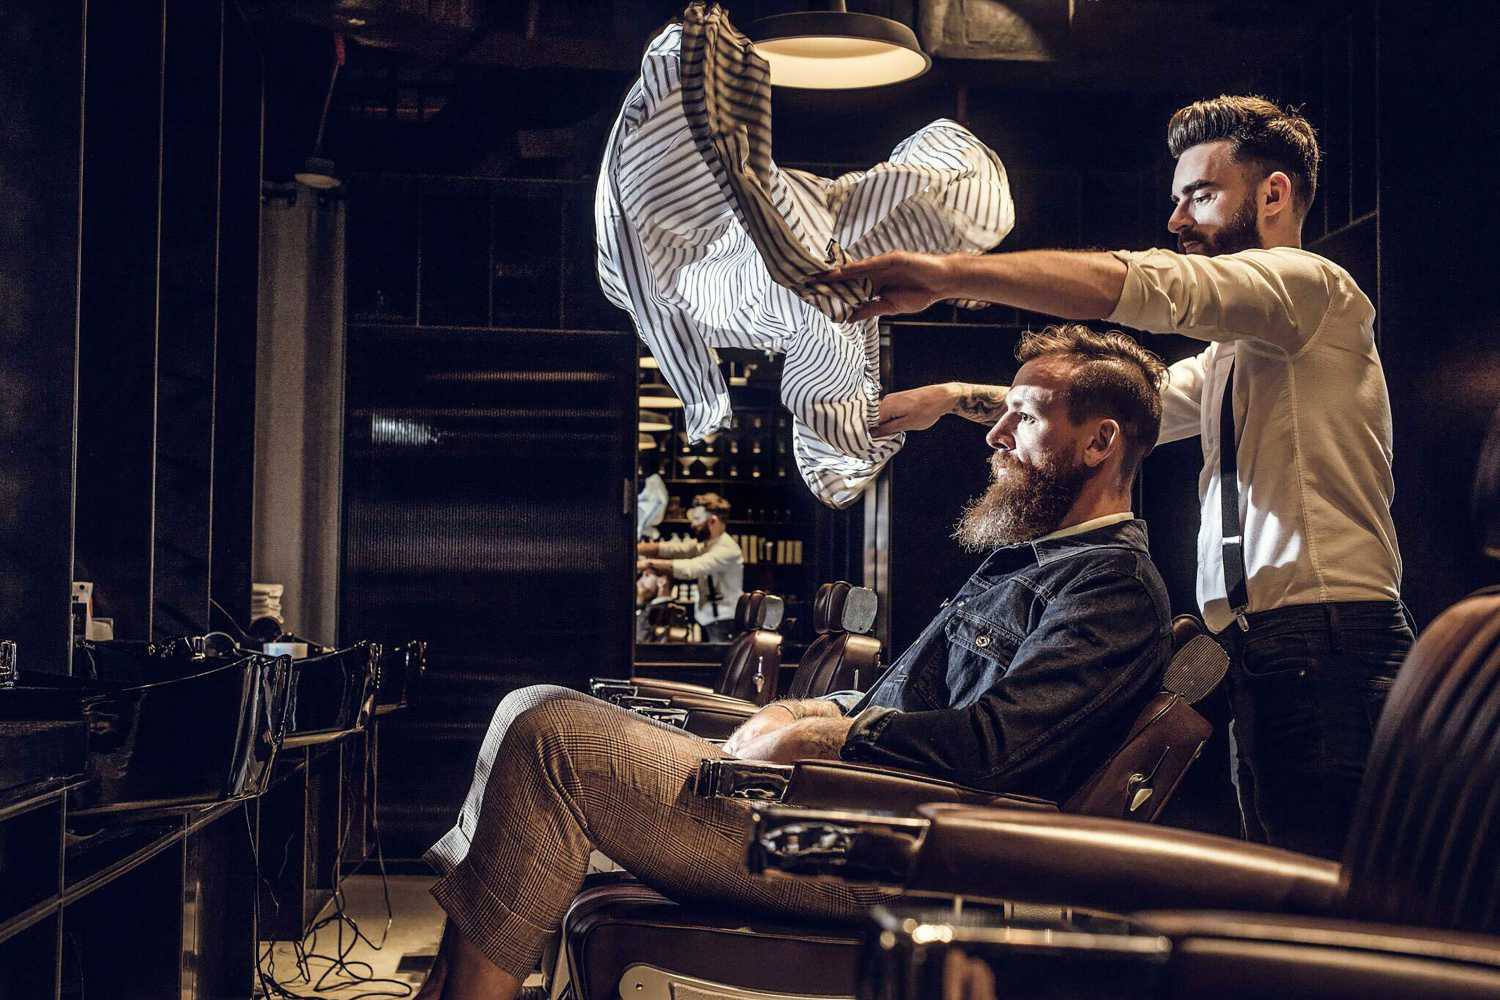 Where To Find The Best Barbershops For Men In Abu Dhabi Wellbeing Time Out Abu Dhabi